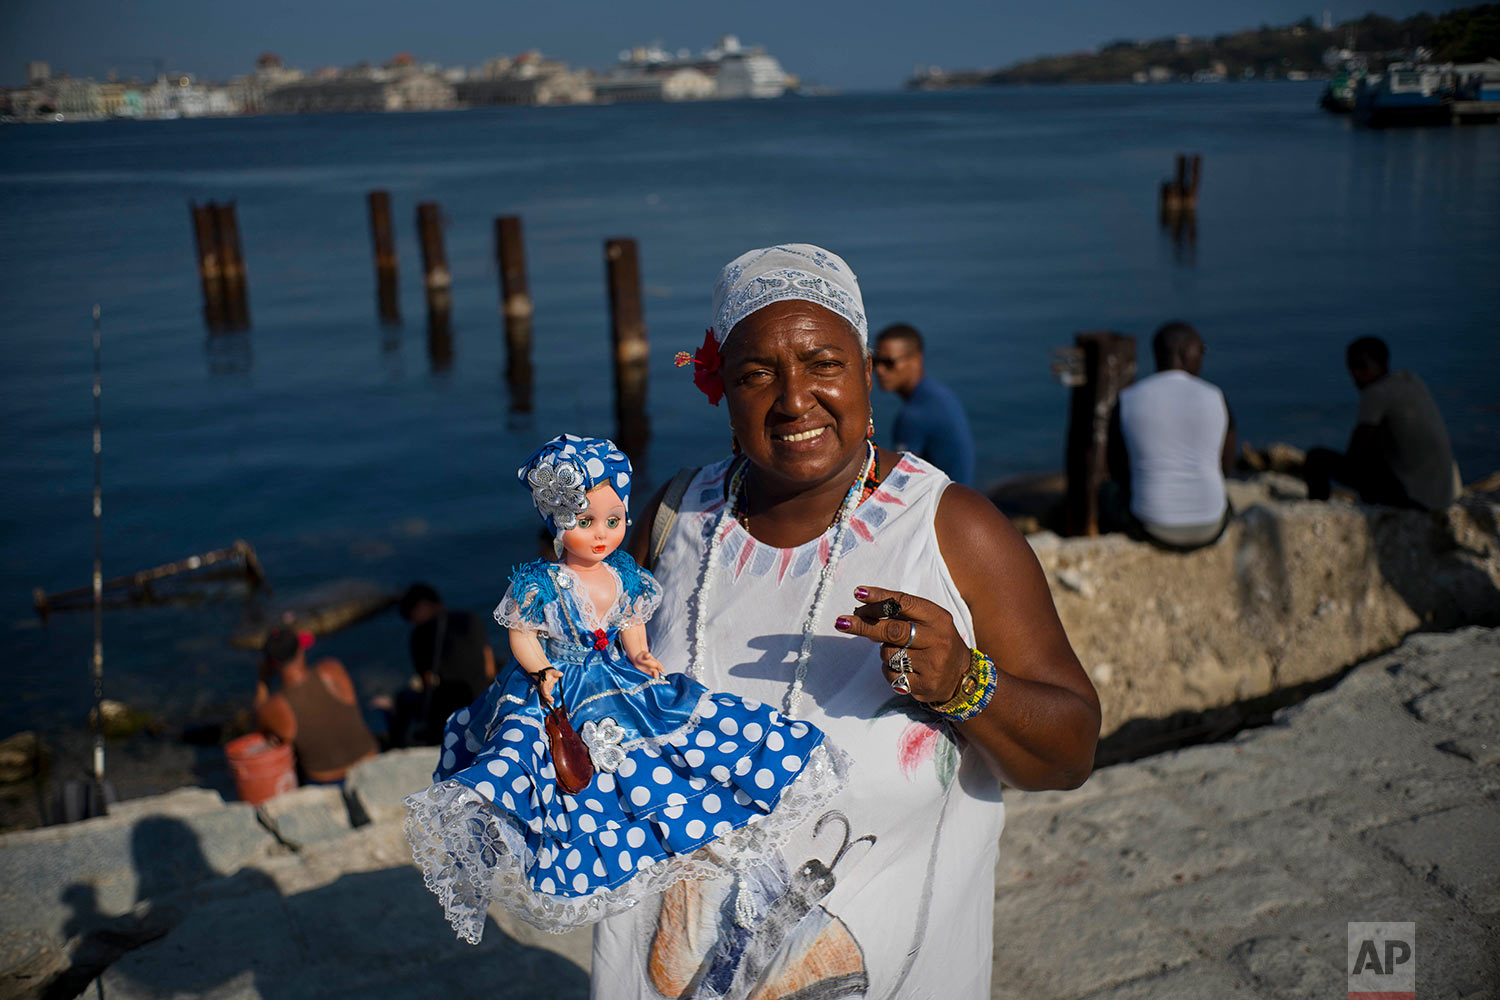 """In this April 13, 2018 photo, Santera Lourdes Nusa, 57, poses with her doll representing the Yoruba sea goddess """"Yemaya"""" in Regla, across the bay from Havana, Cuba. Lourdes became a self-employed Santera at a very young age, reading people's futures. """"The world is subject to change. Our country has always adopted a policy of improving relations with the entire world,"""" she said, adding Donald Trump's position toward Cuba will not change Cuba's position to open relations with the U.S. (AP Photo/Ramon Espinosa)"""